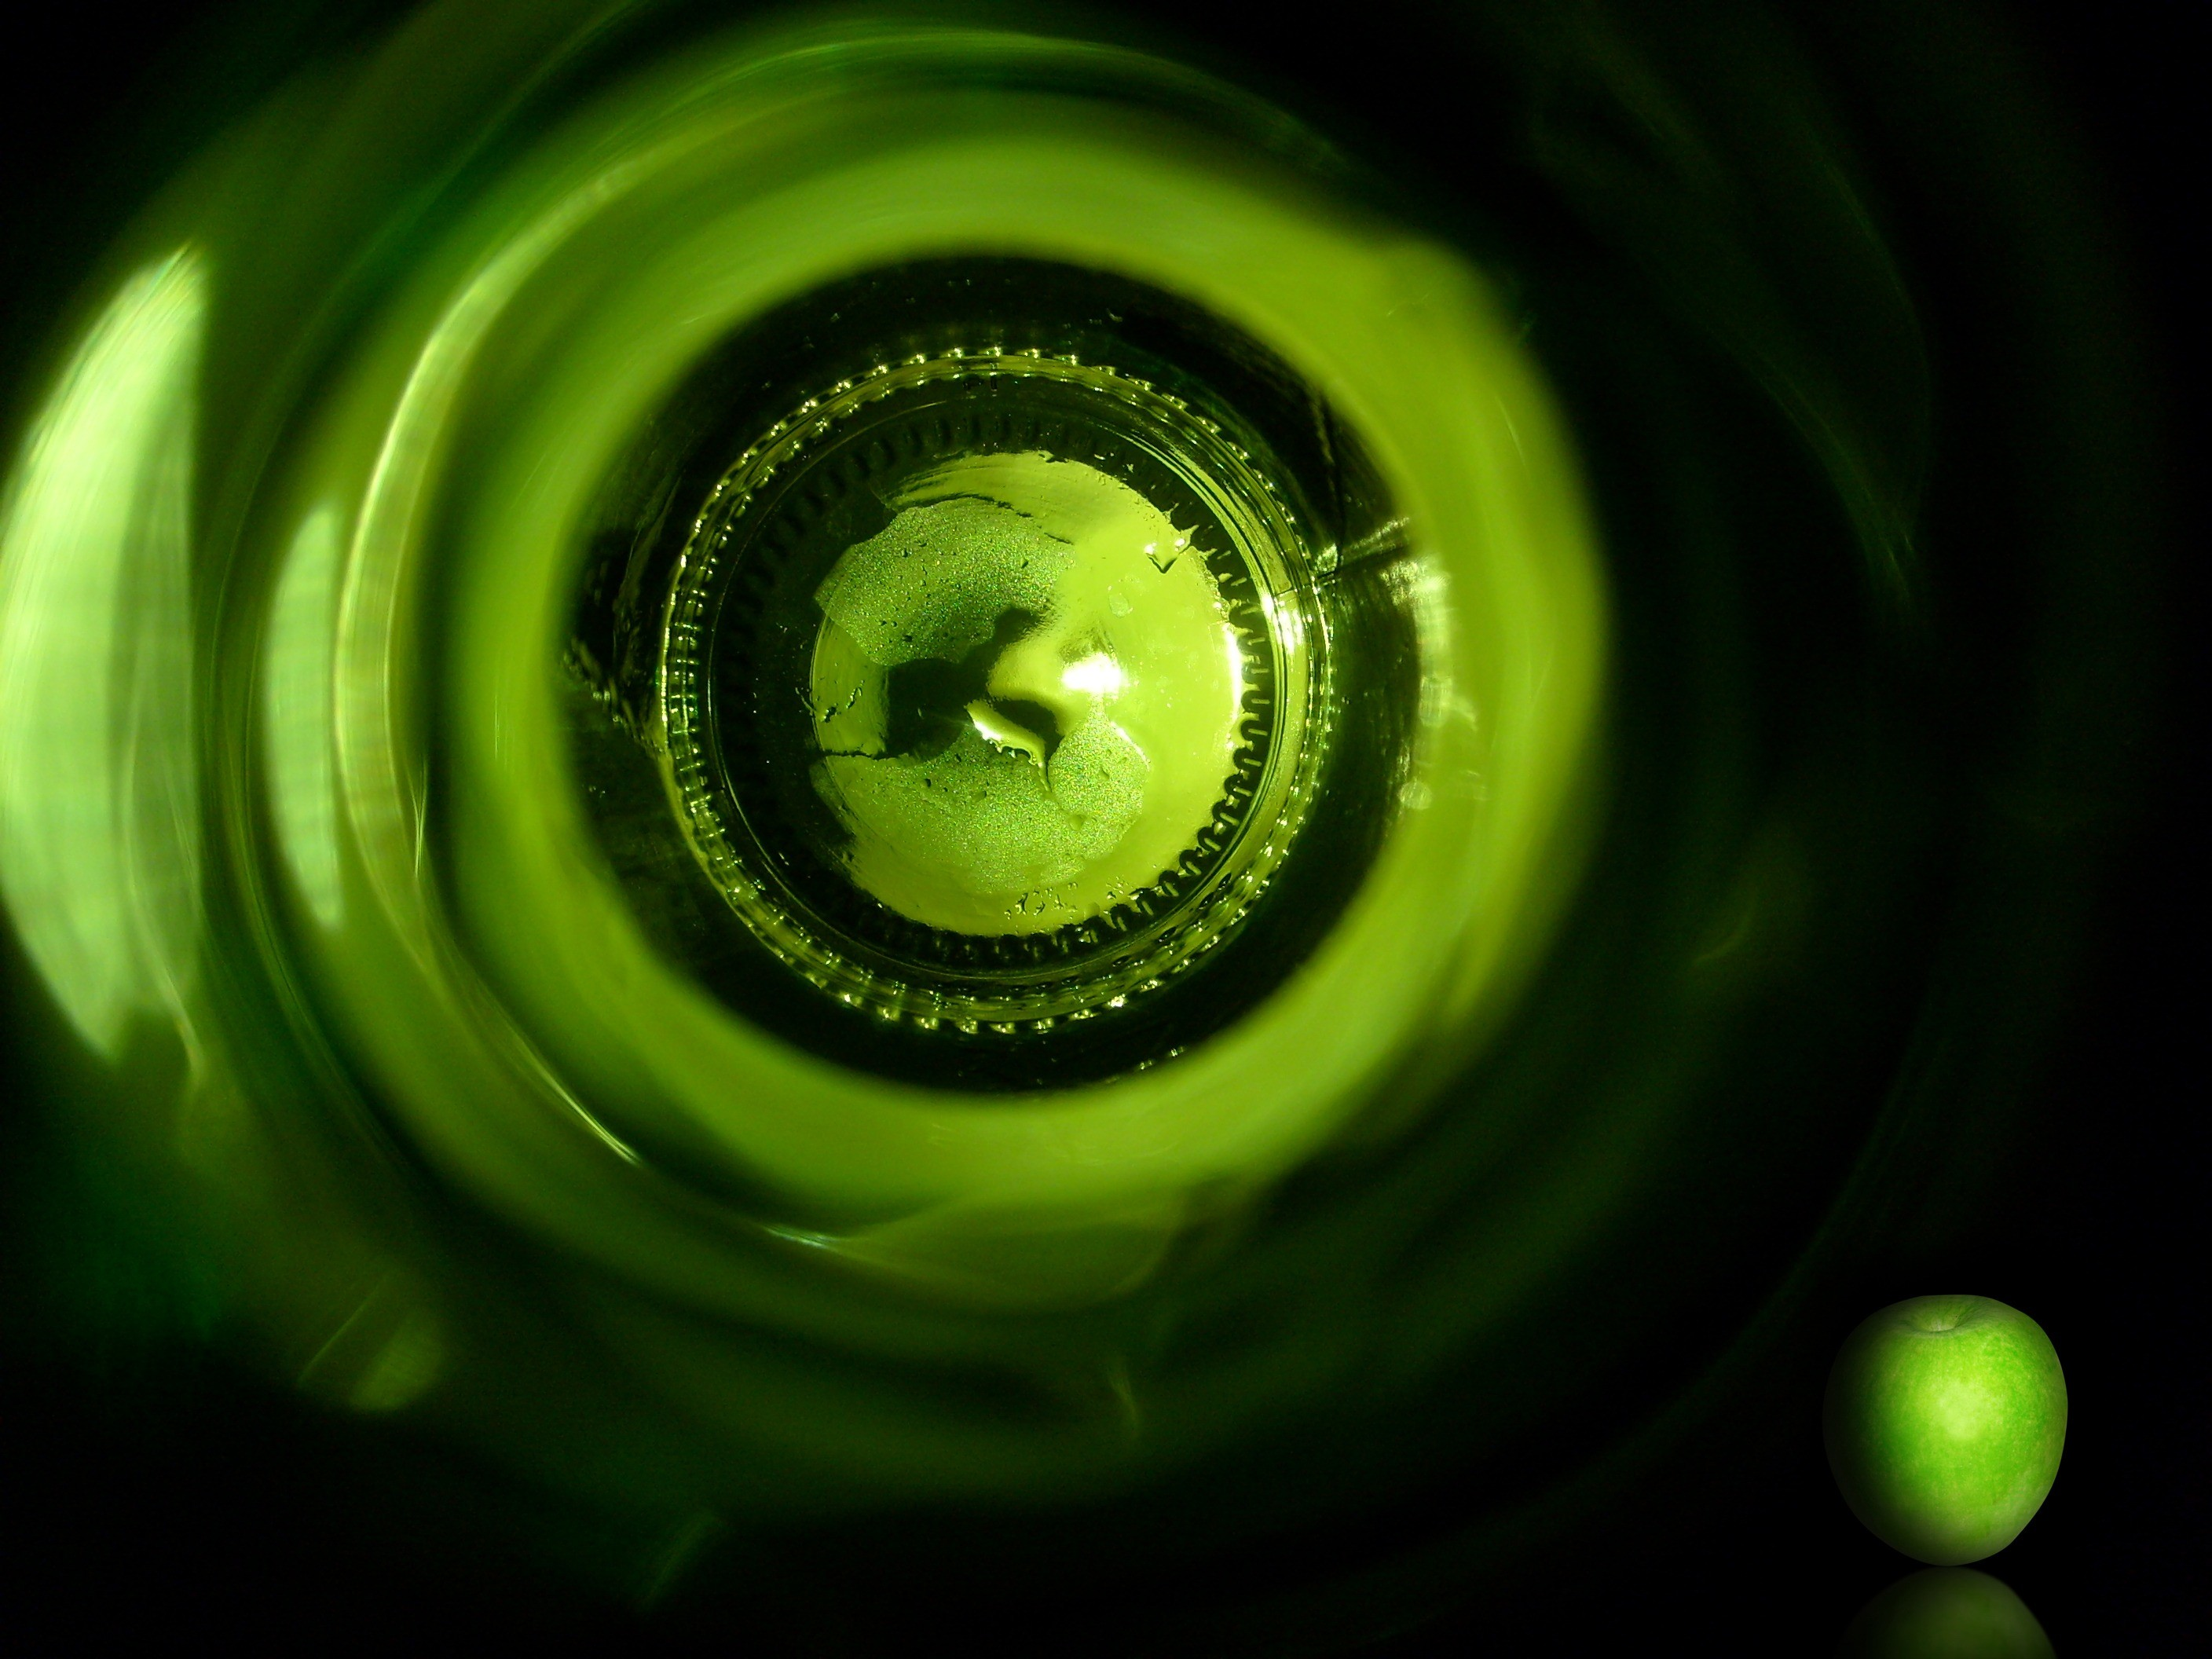 Free Images : grass, light, leaf, tube, flower, glass, green, color, clean,  drink, darkness, bottle, empty, yellow, beer, alcohol, circle, close up,  eye, …